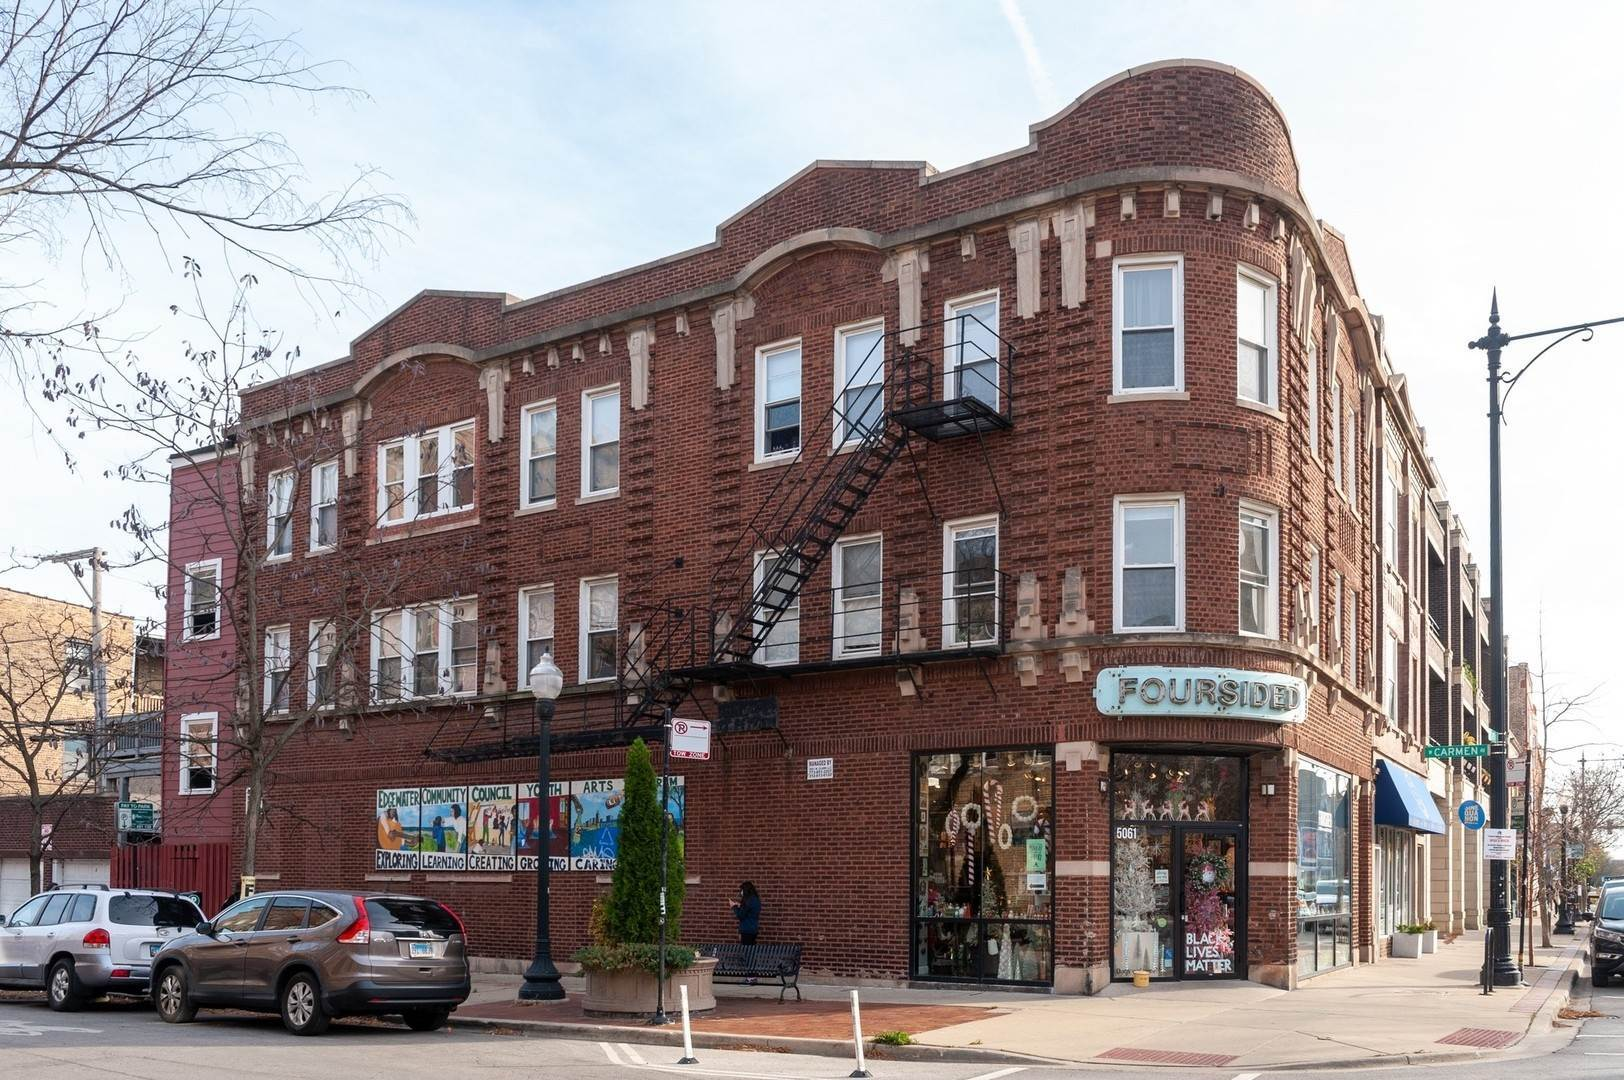 Commercial for Sale at 5061 N Clark Street Chicago, Illinois 60640 United States